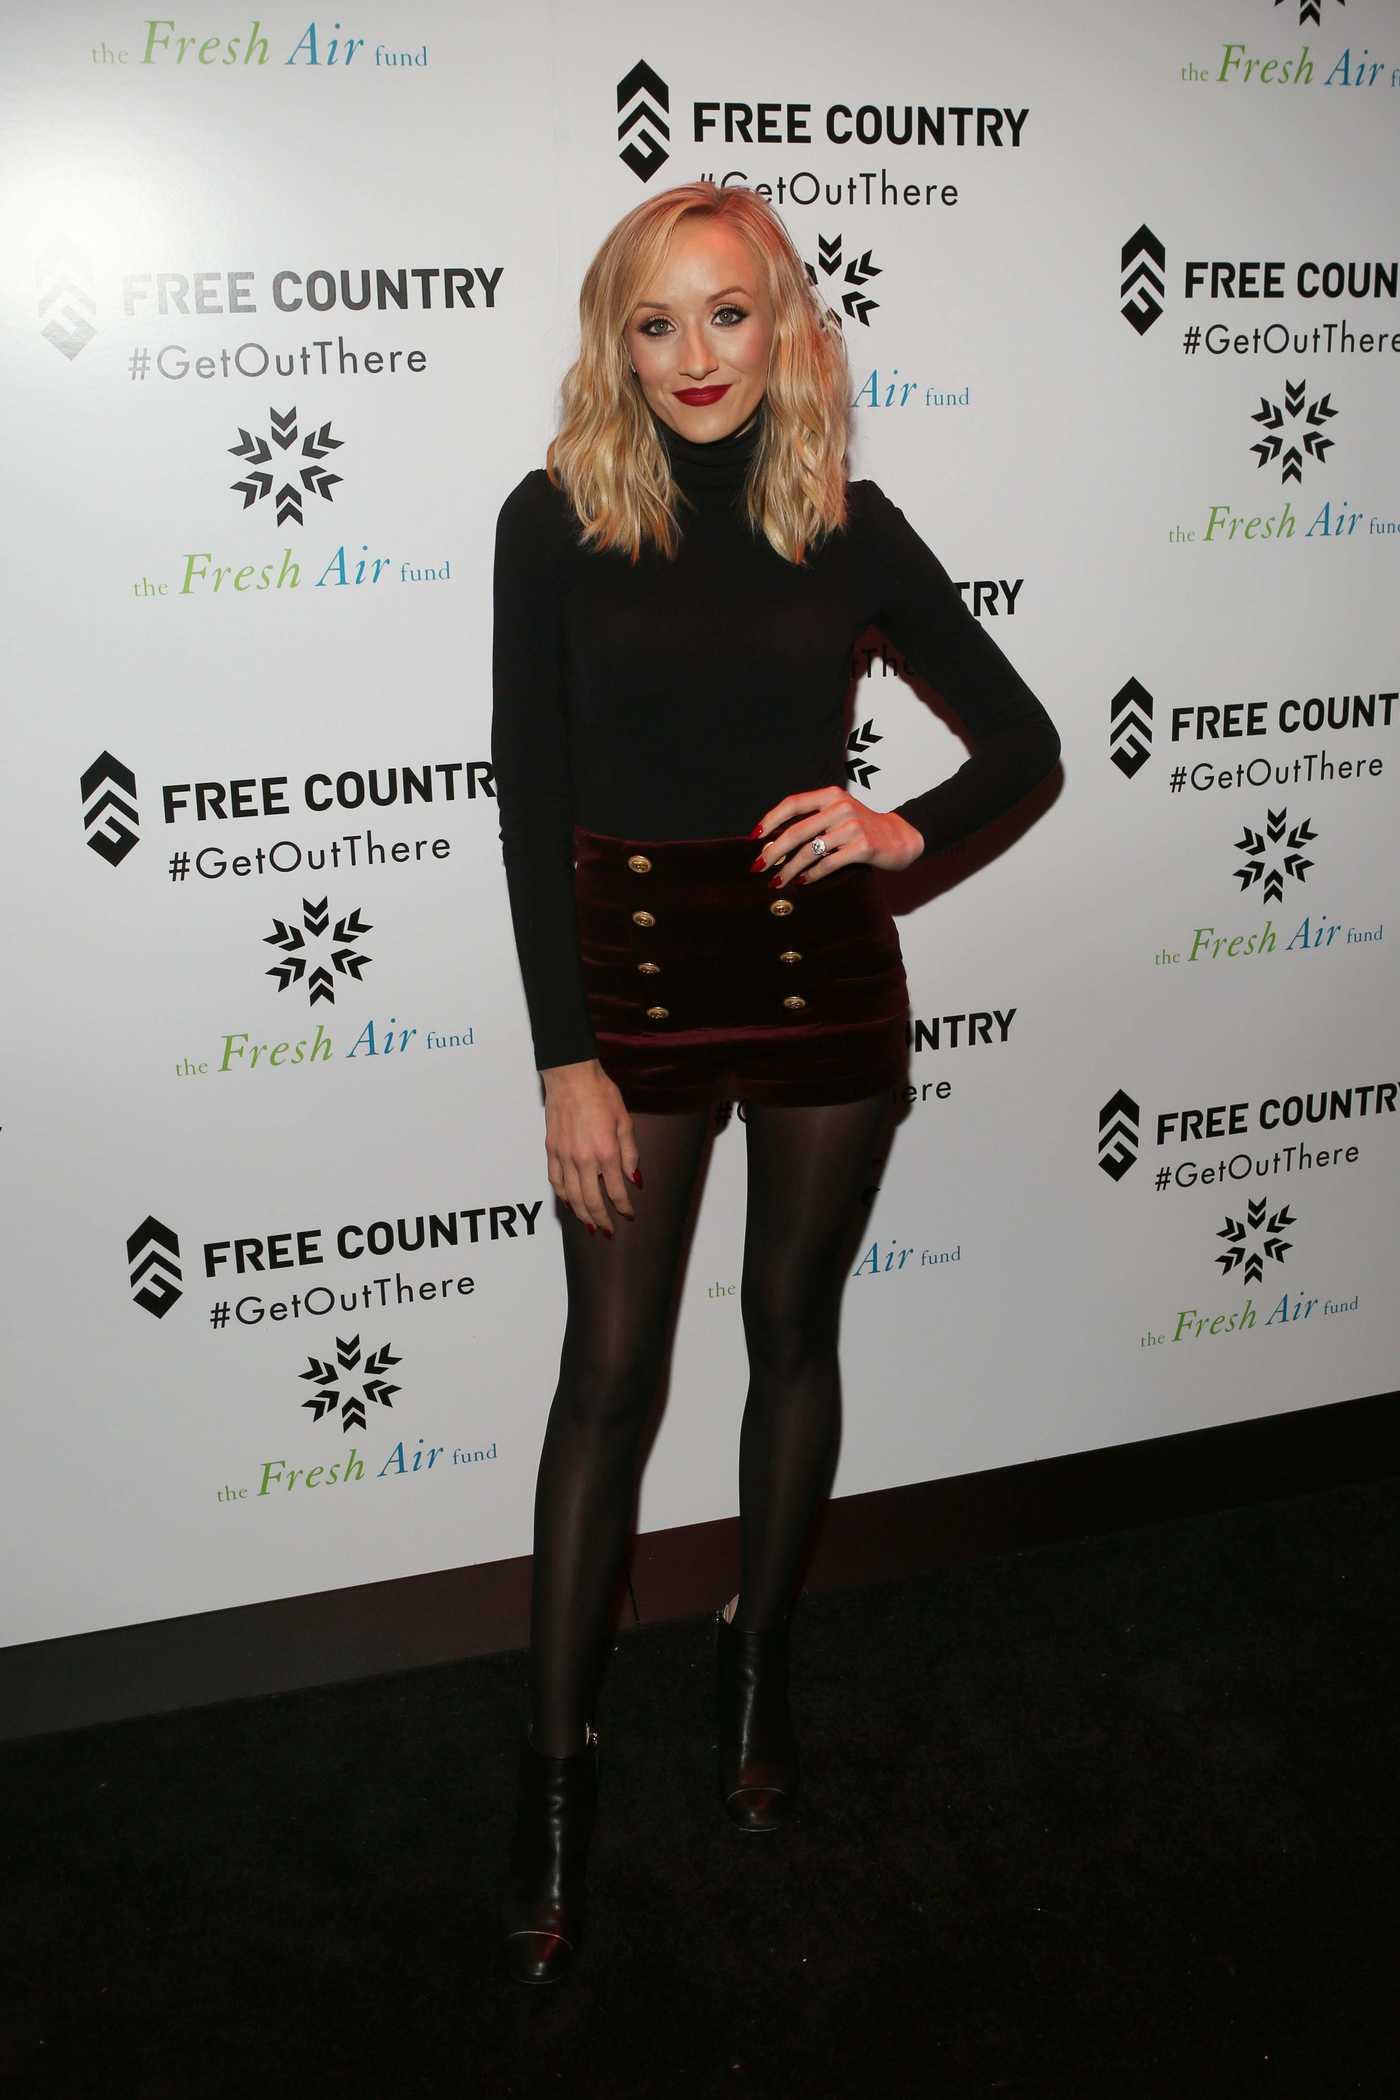 Nastia Liukin at the Free Country and The Fresh Air Fund Partnership Celebration in NYC 12/19/2017